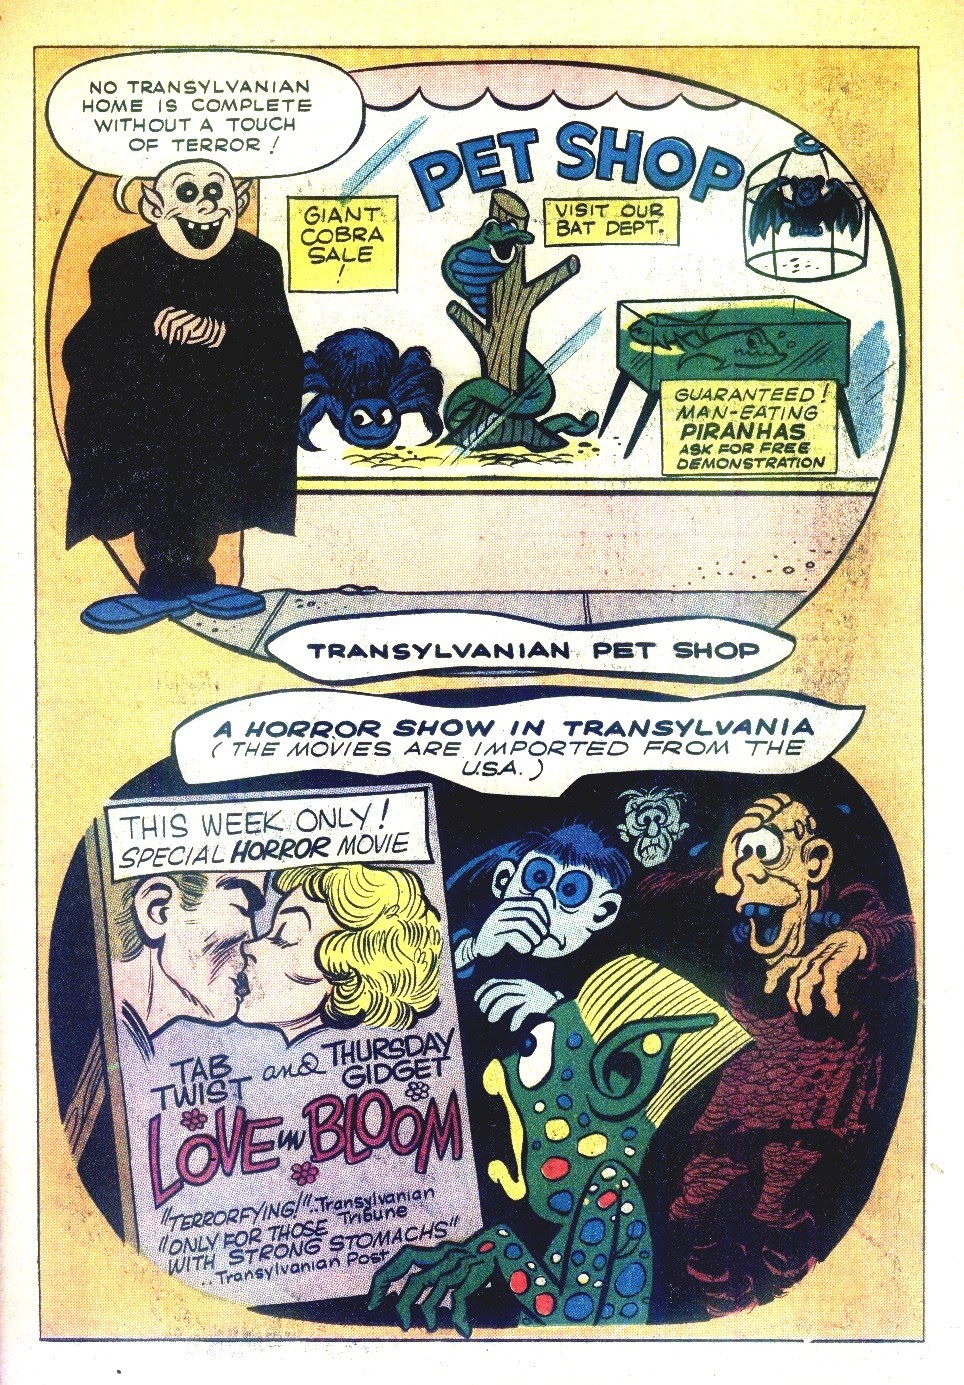 Read online Tales Calculated to Drive You Bats comic -  Issue #3 - 27